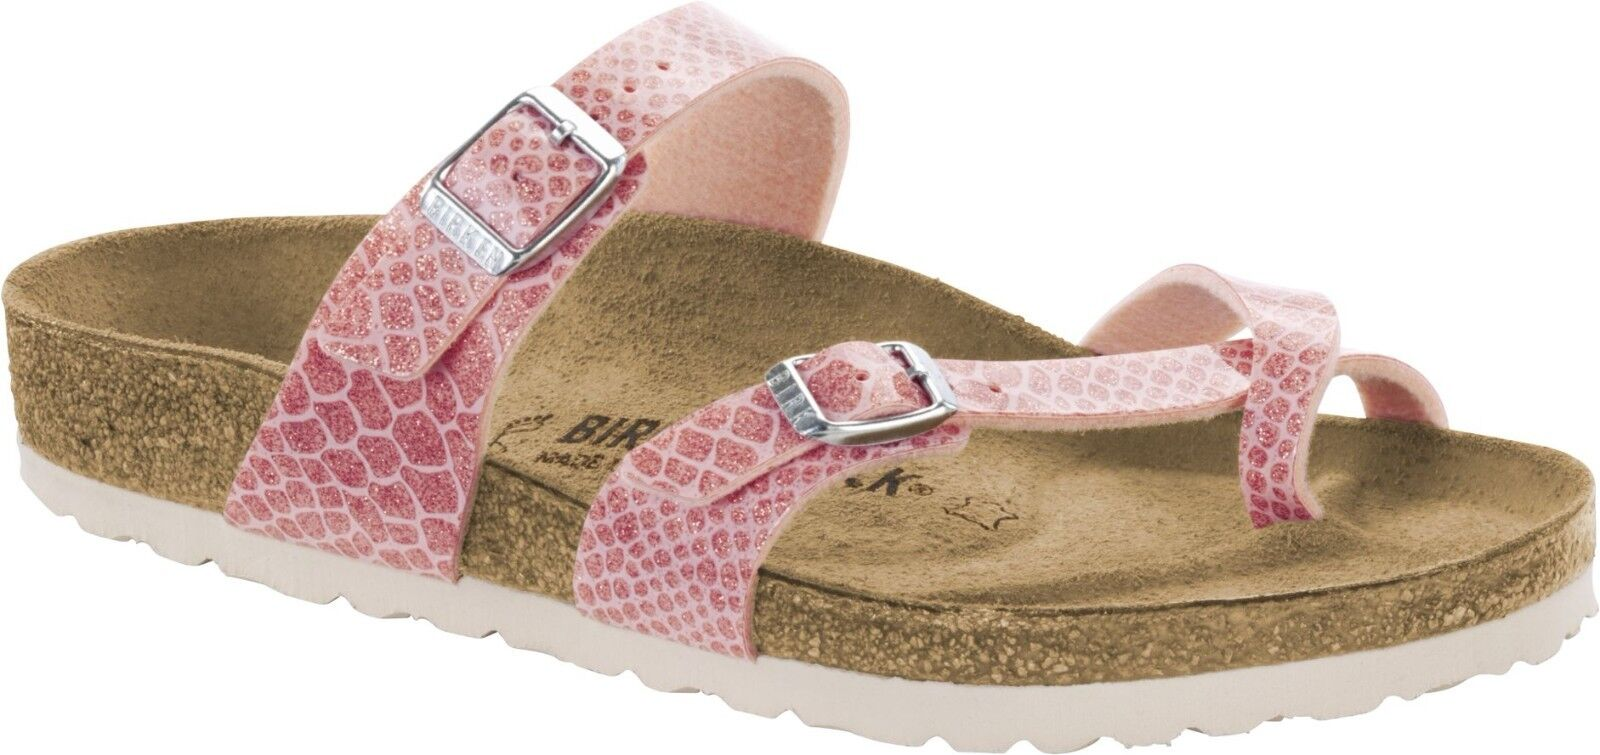 Birkenstock Mayari Magic Snake Rose Zehensteg Größe 36-42 Fußbett normal